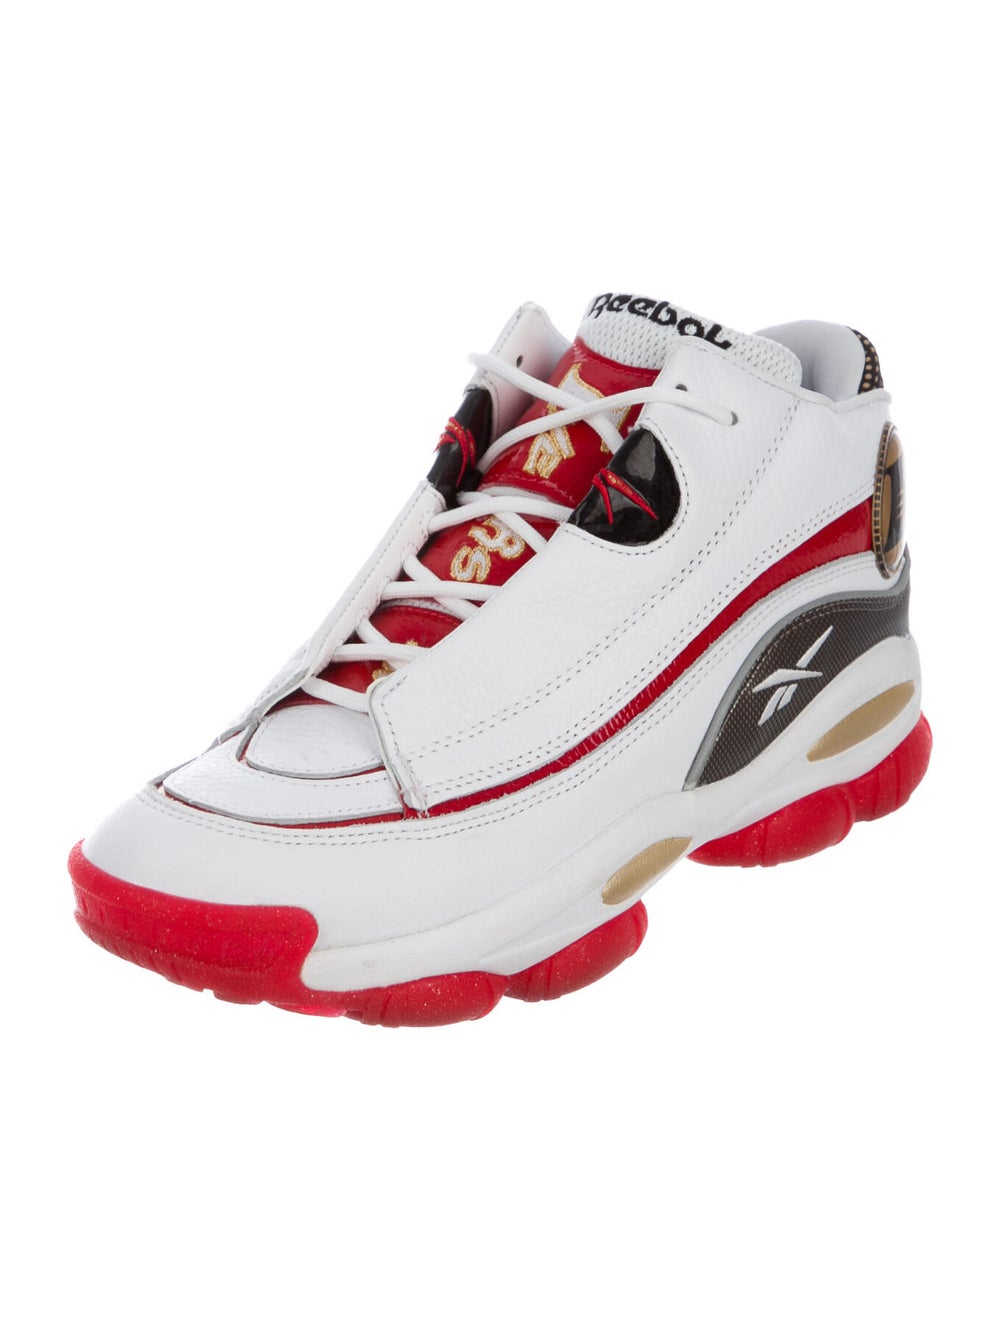 Reebok 2018 The Answer DMX Sneakers white - image 2